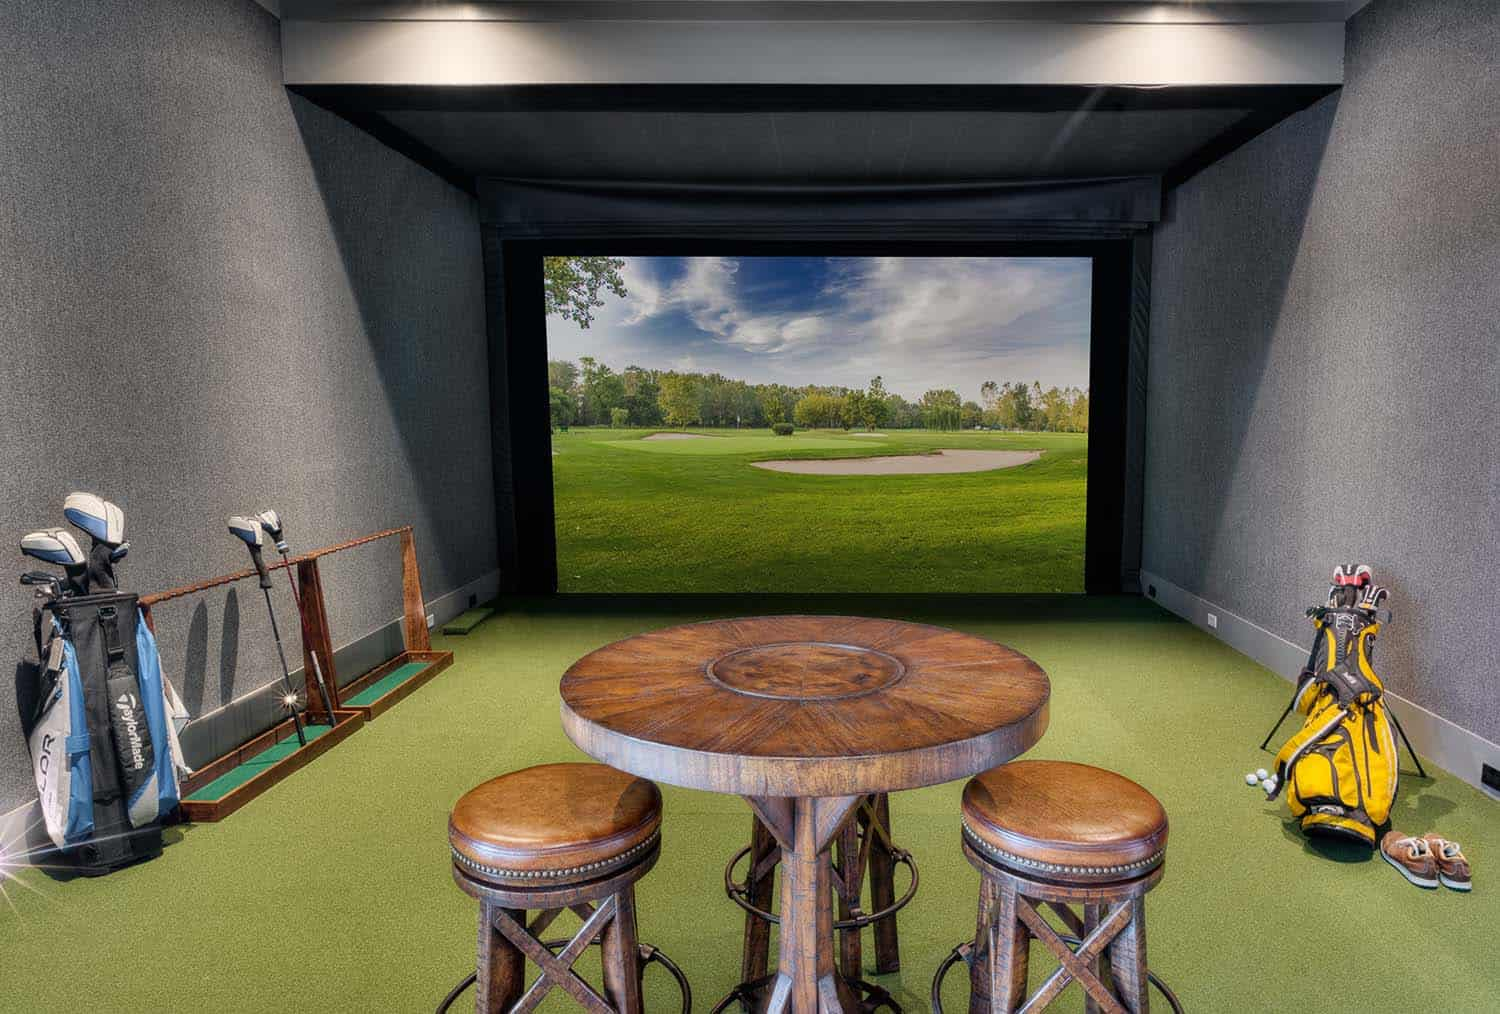 traditional-style-golf-simulator